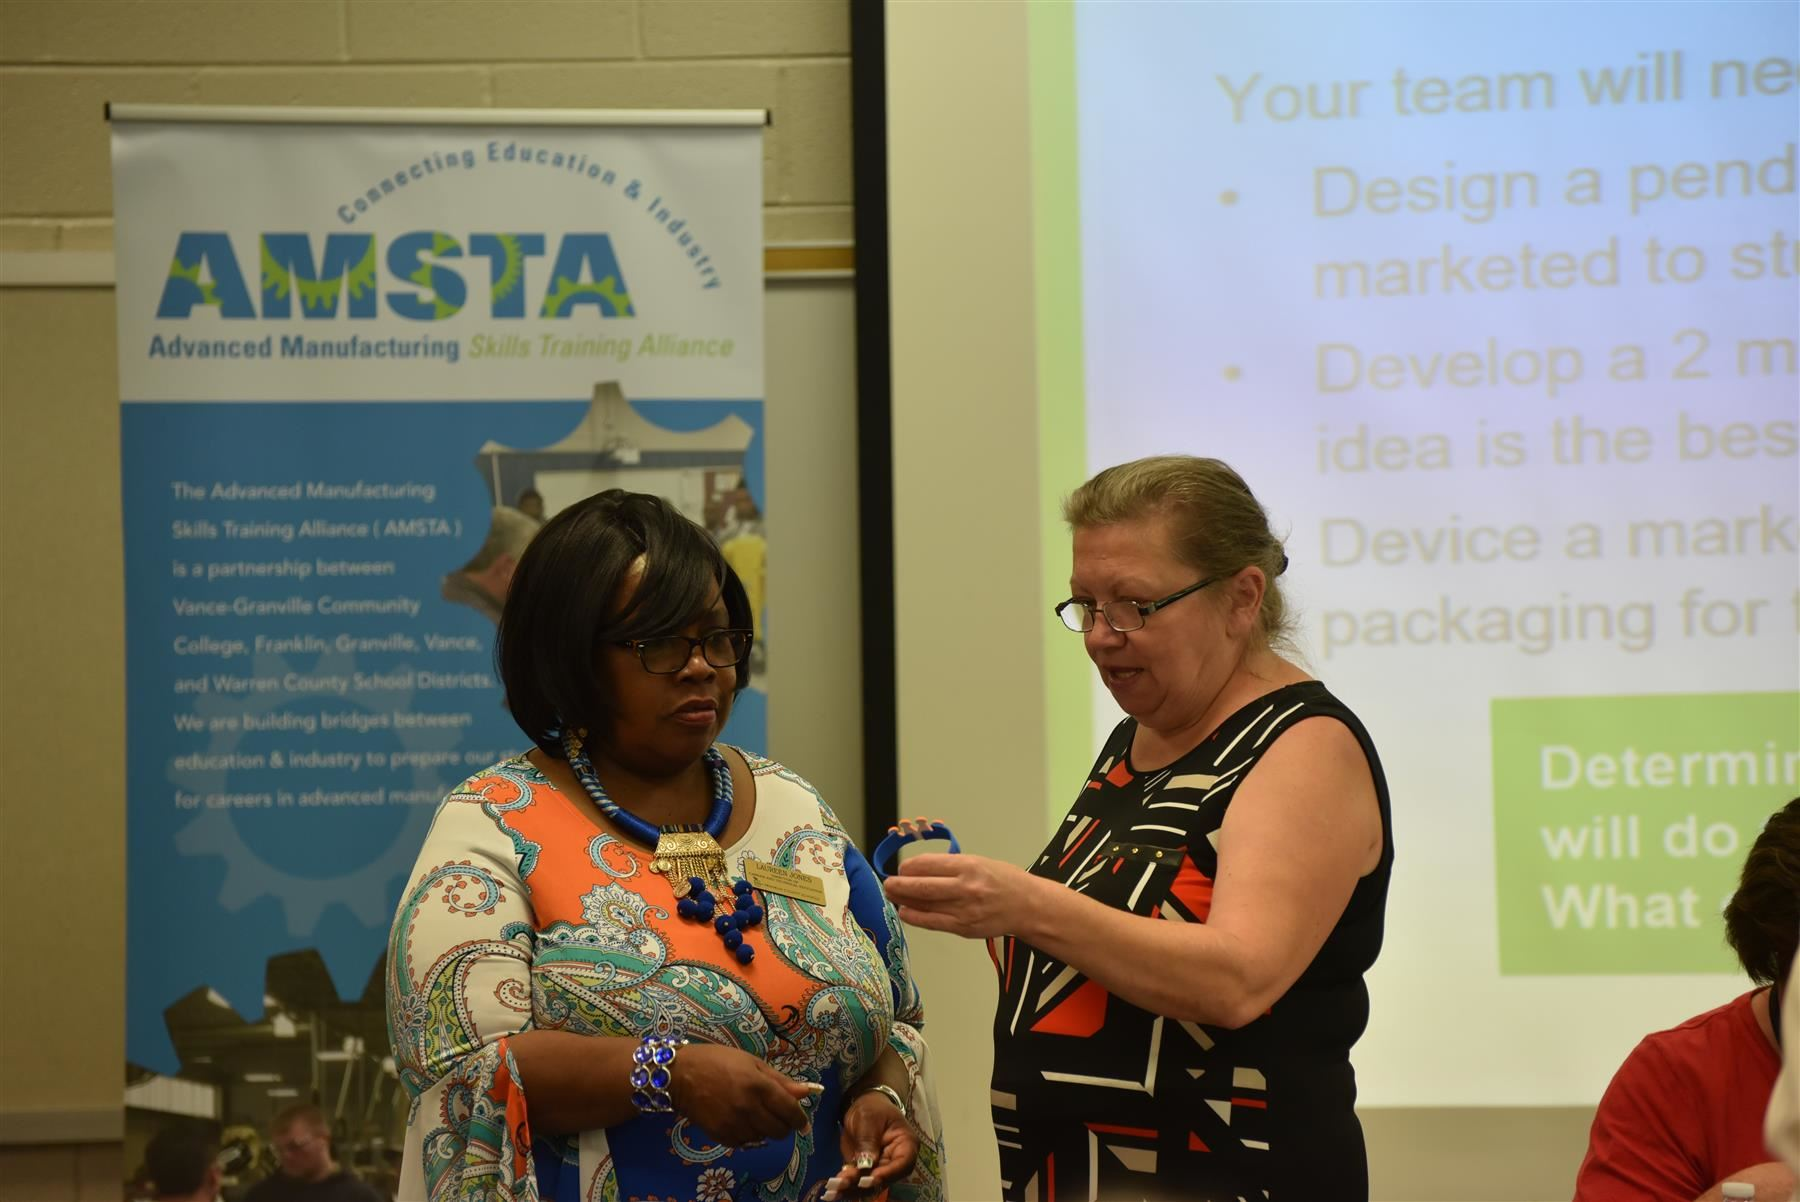 Teachers Receive Hands-On Training in Project Based Learning